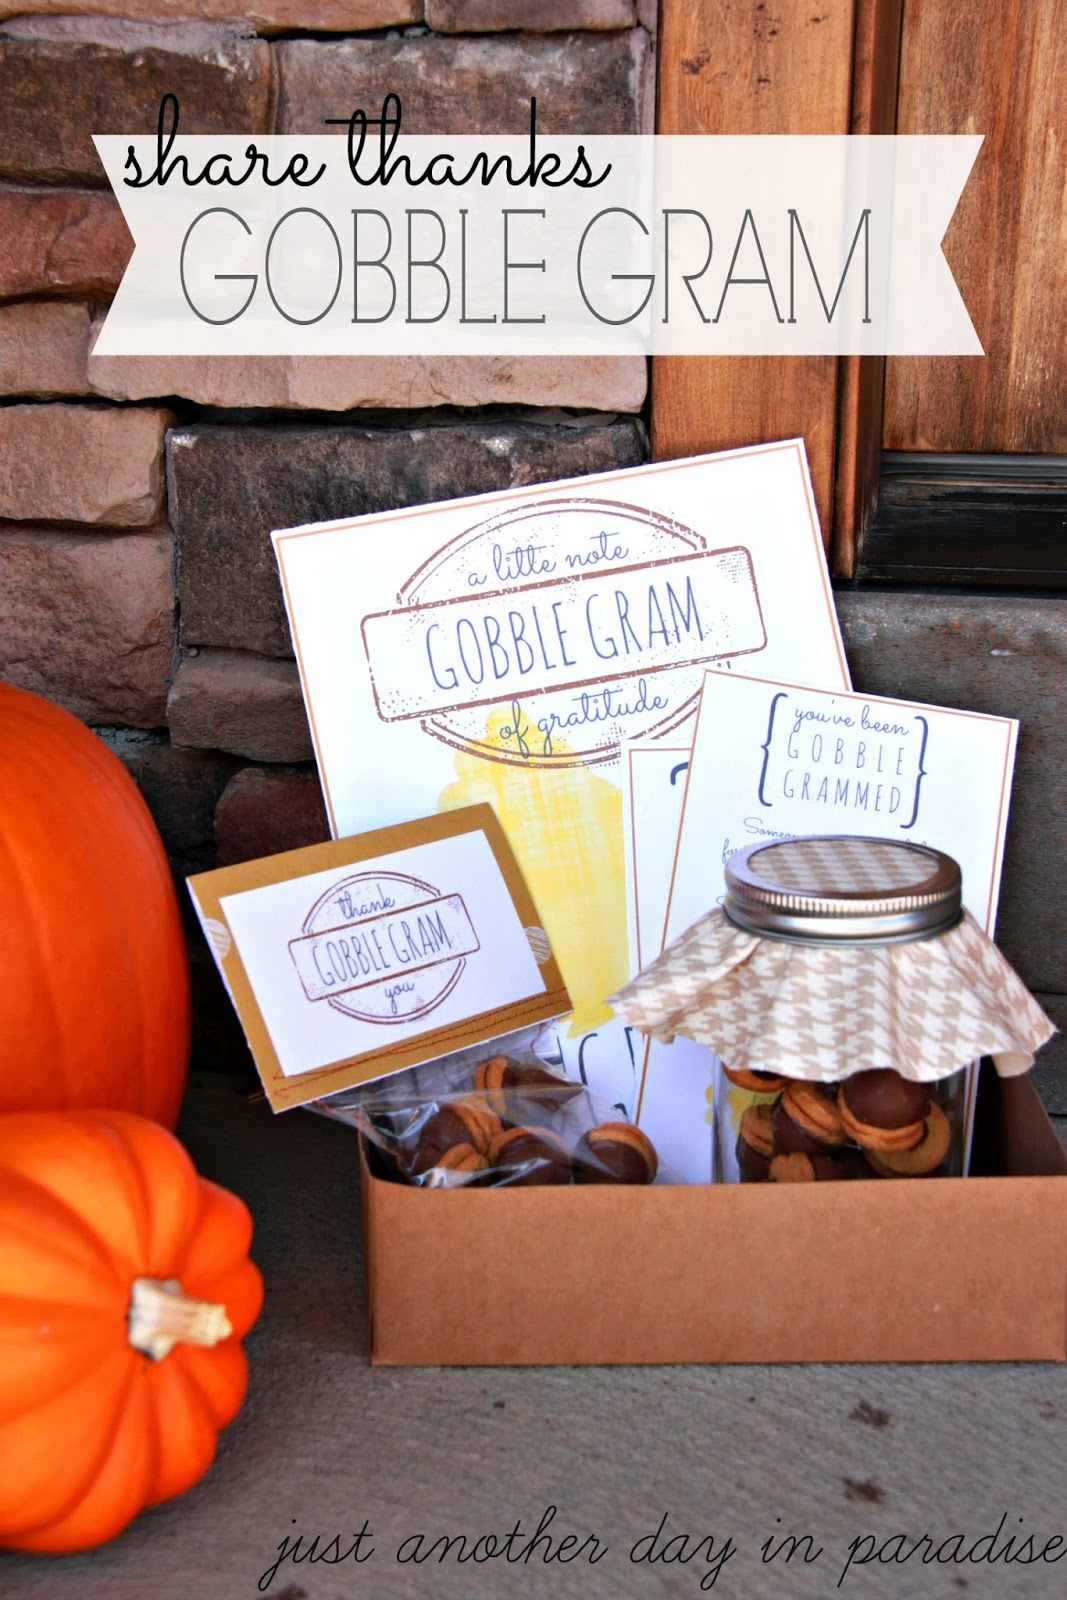 Larissa Another Day Gobble Grams Thank Your Neighbor